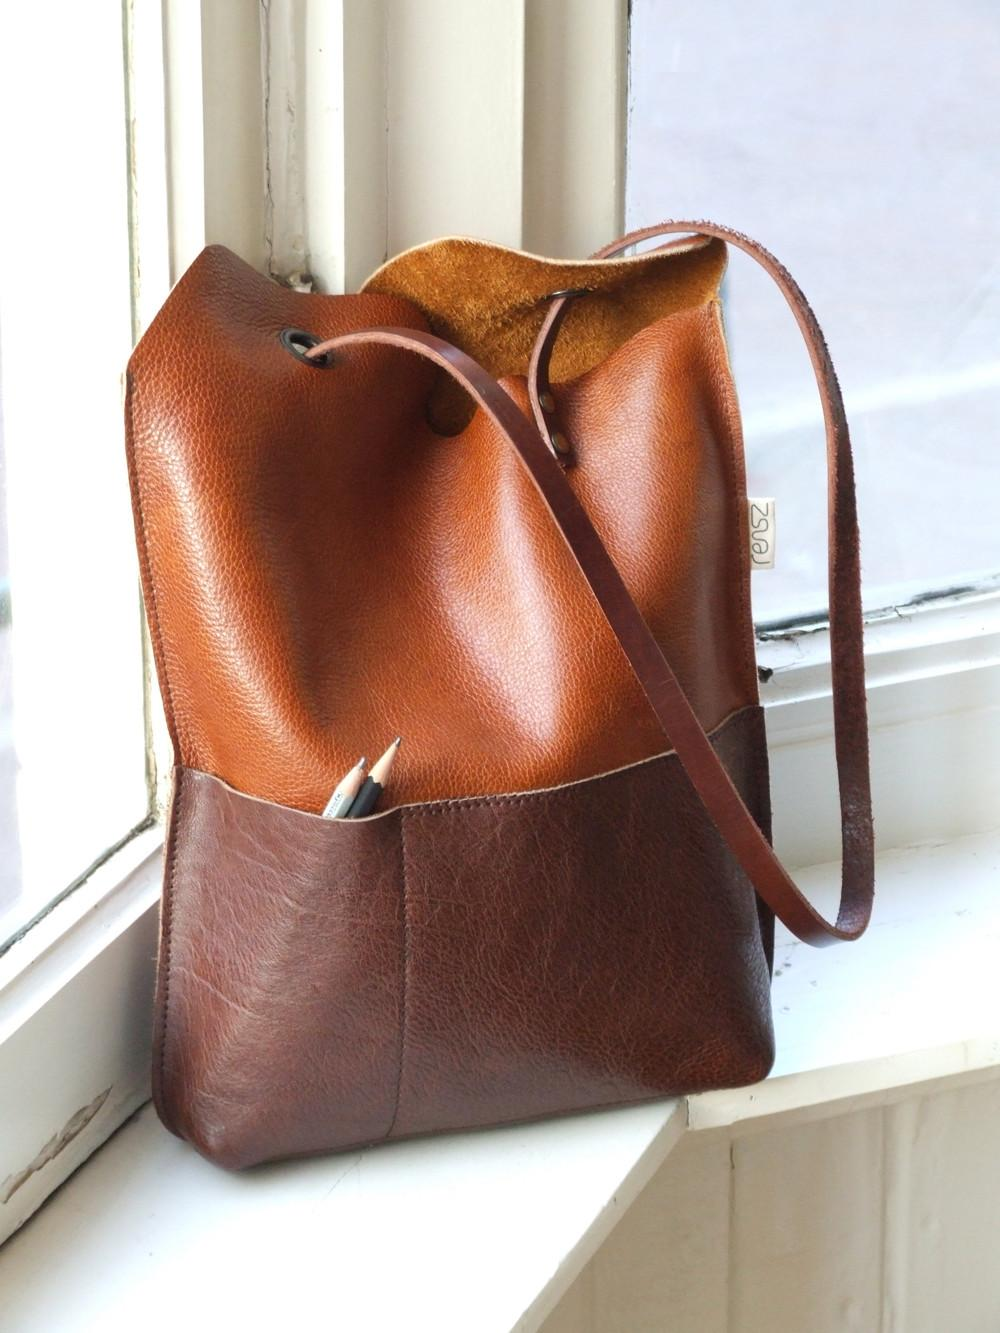 Leather Yin Yang Bag Sewing Projects Burdastyle